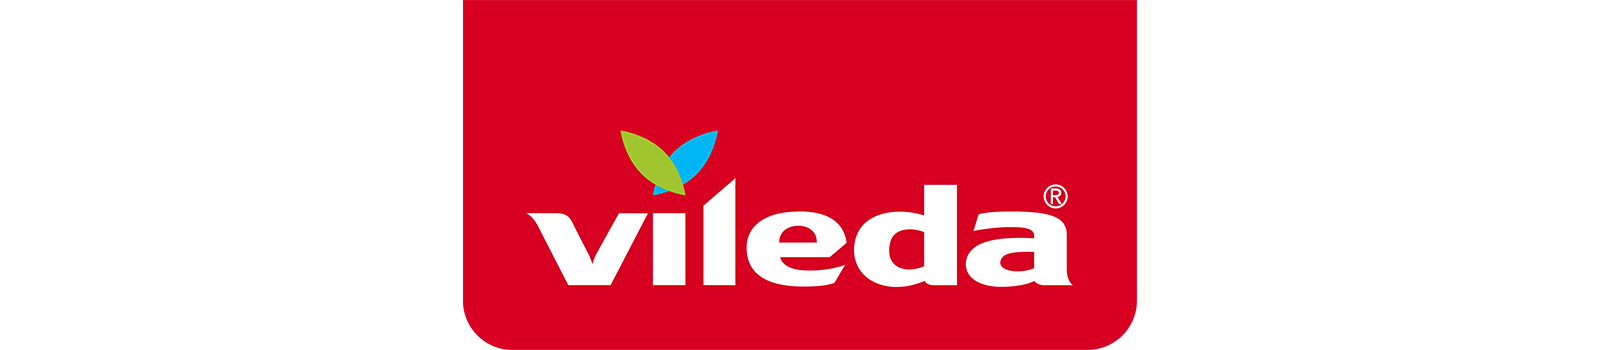 Header 1600x350 Vileda .jpg position: relative